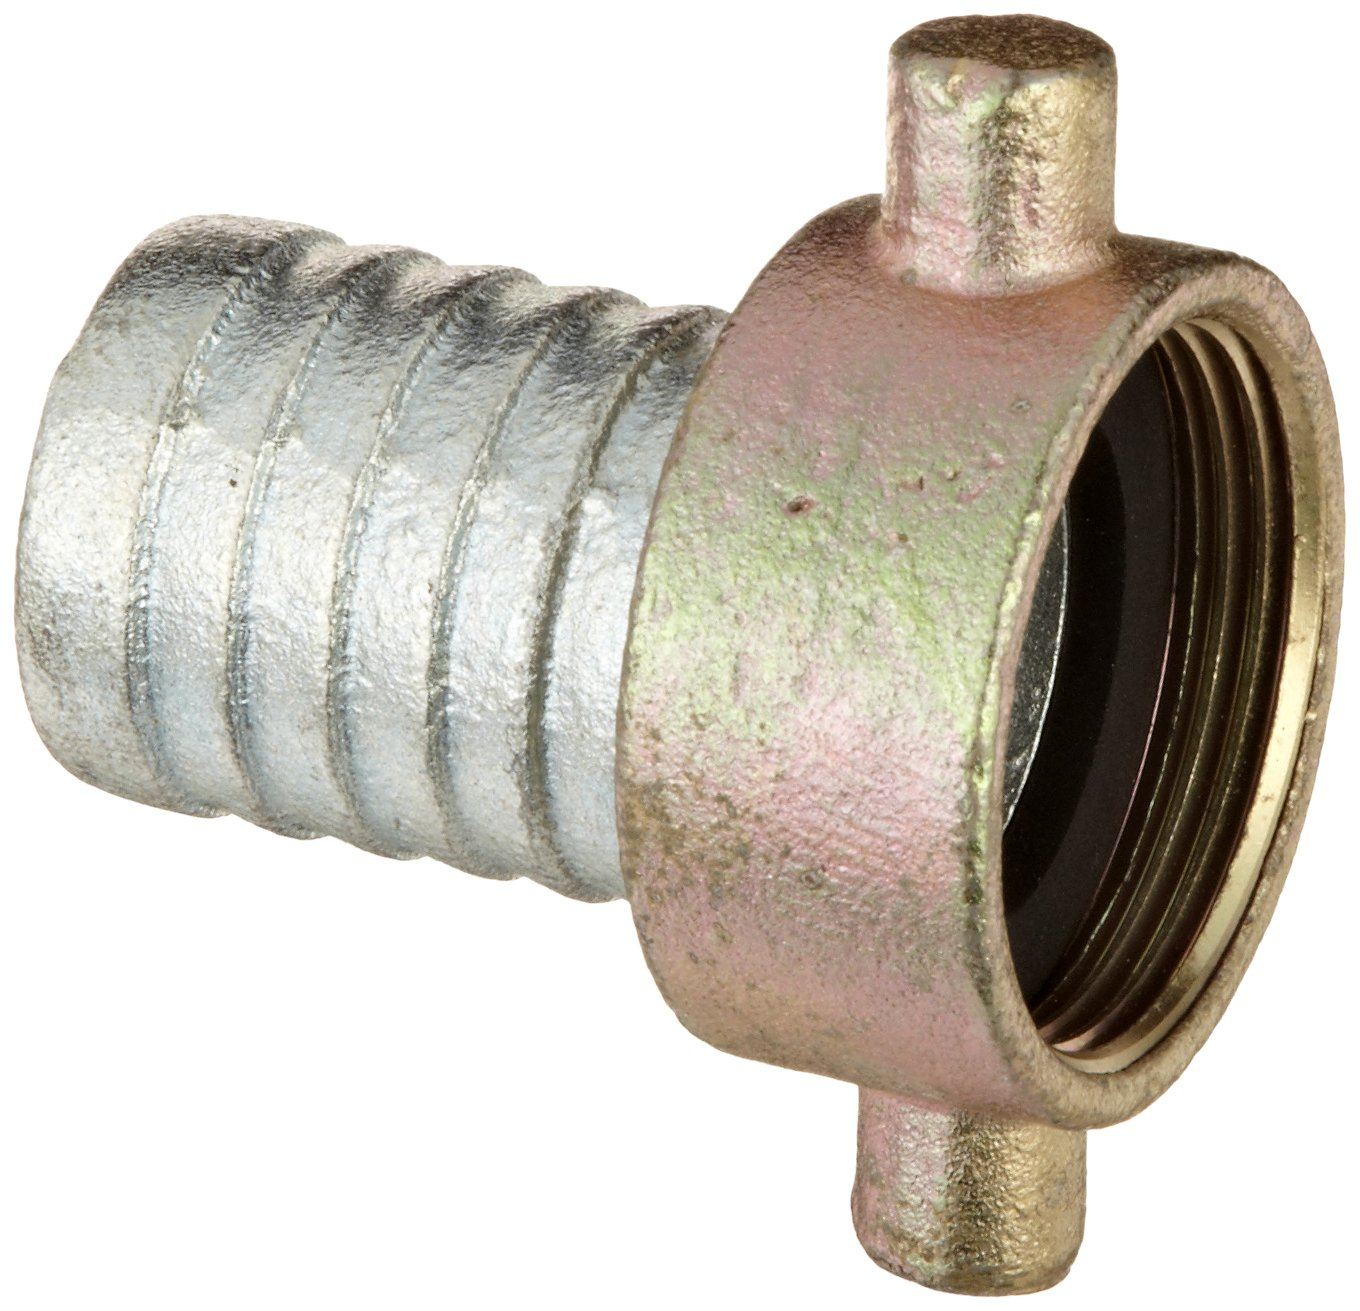 Dixon S17 Plated Iron Hose Fitting 1-1//4 NPSM Female x 1-1//4 Hose ID Barbed King Short Shank Suction Coupling with Plated Iron Nut